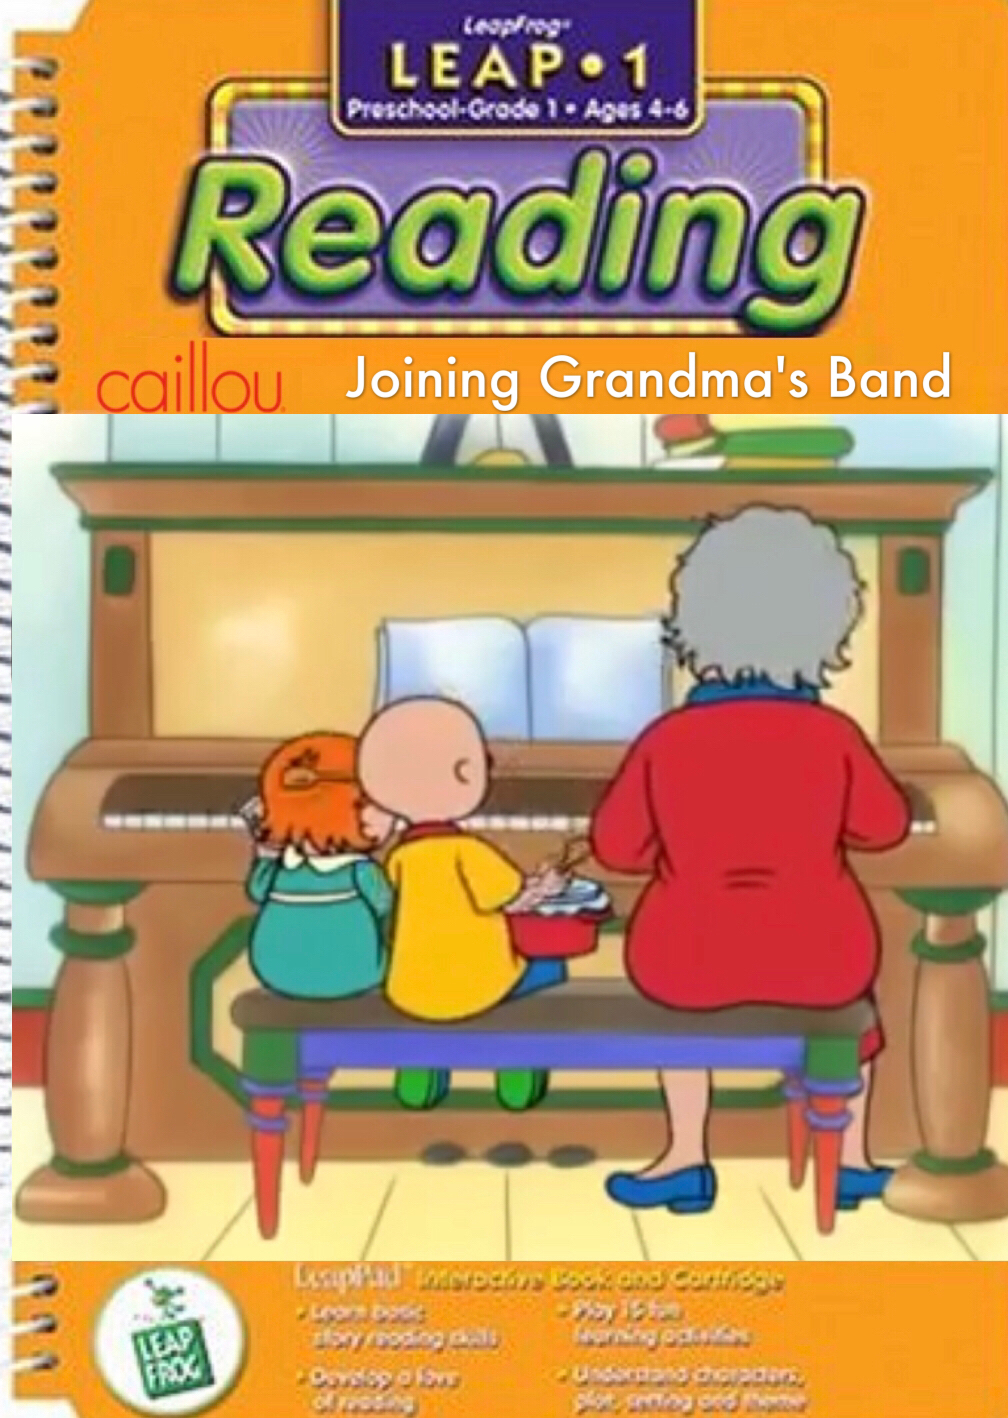 Unused LeapPad Games: Caillou Joins G's Band by smochdar on